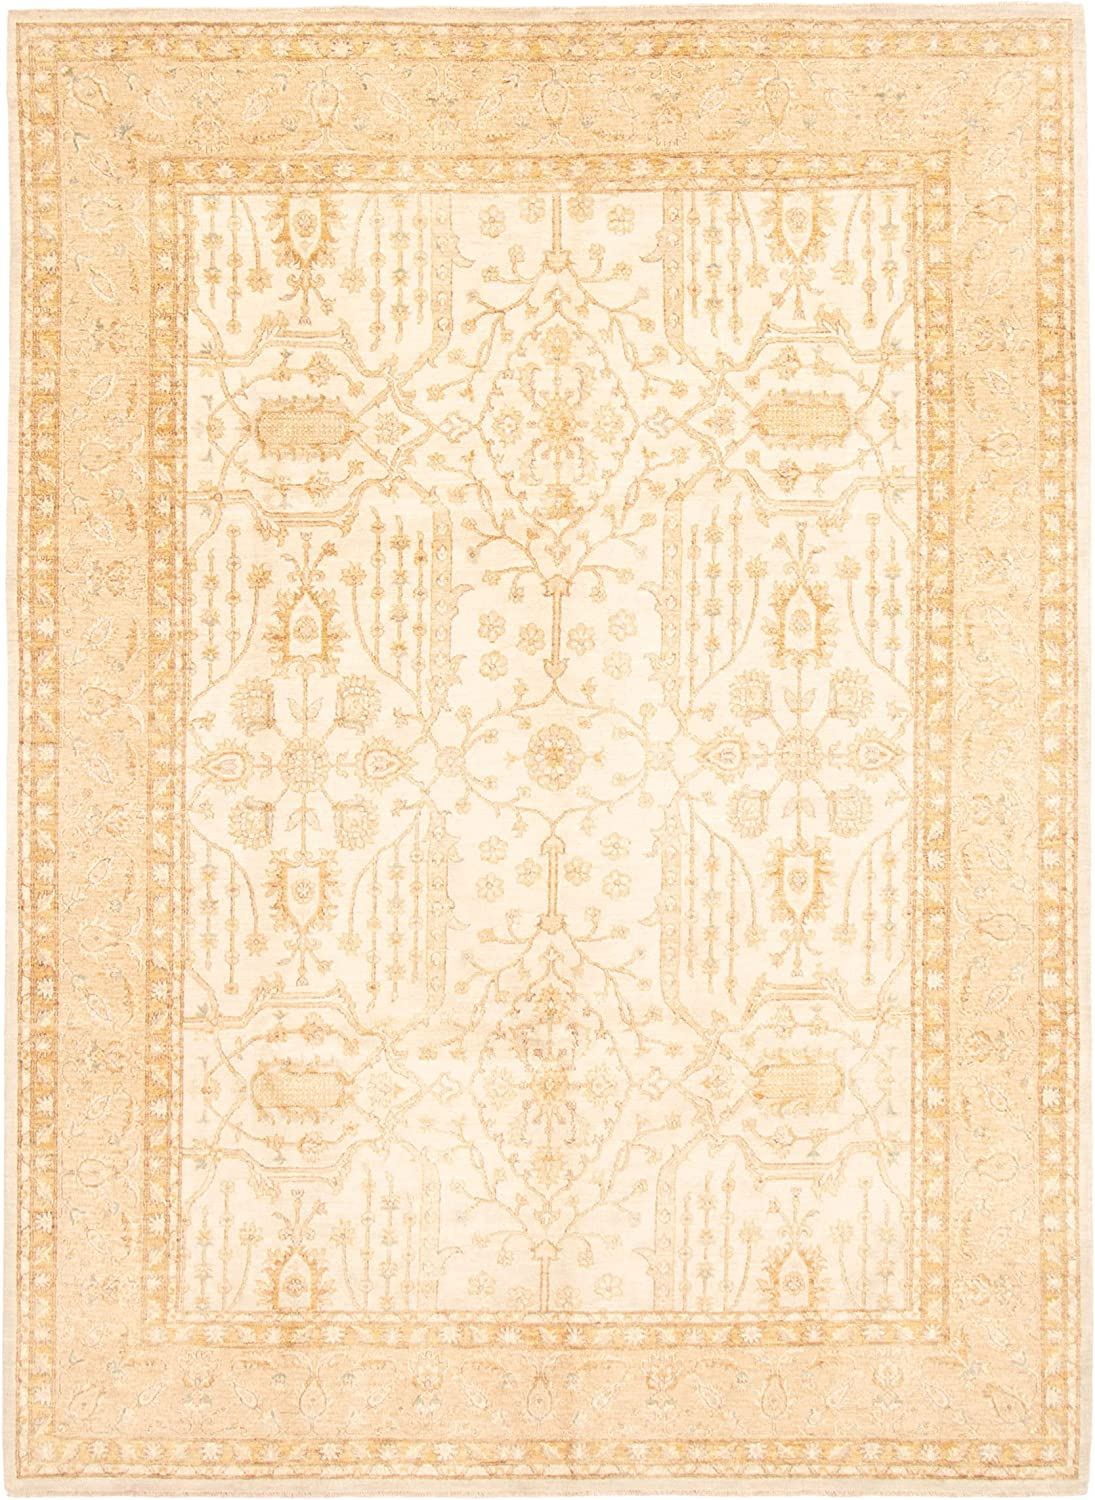 eCarpet Gallery Large Attention brand Rare Area Rug Room Hand-K for Bedroom Living